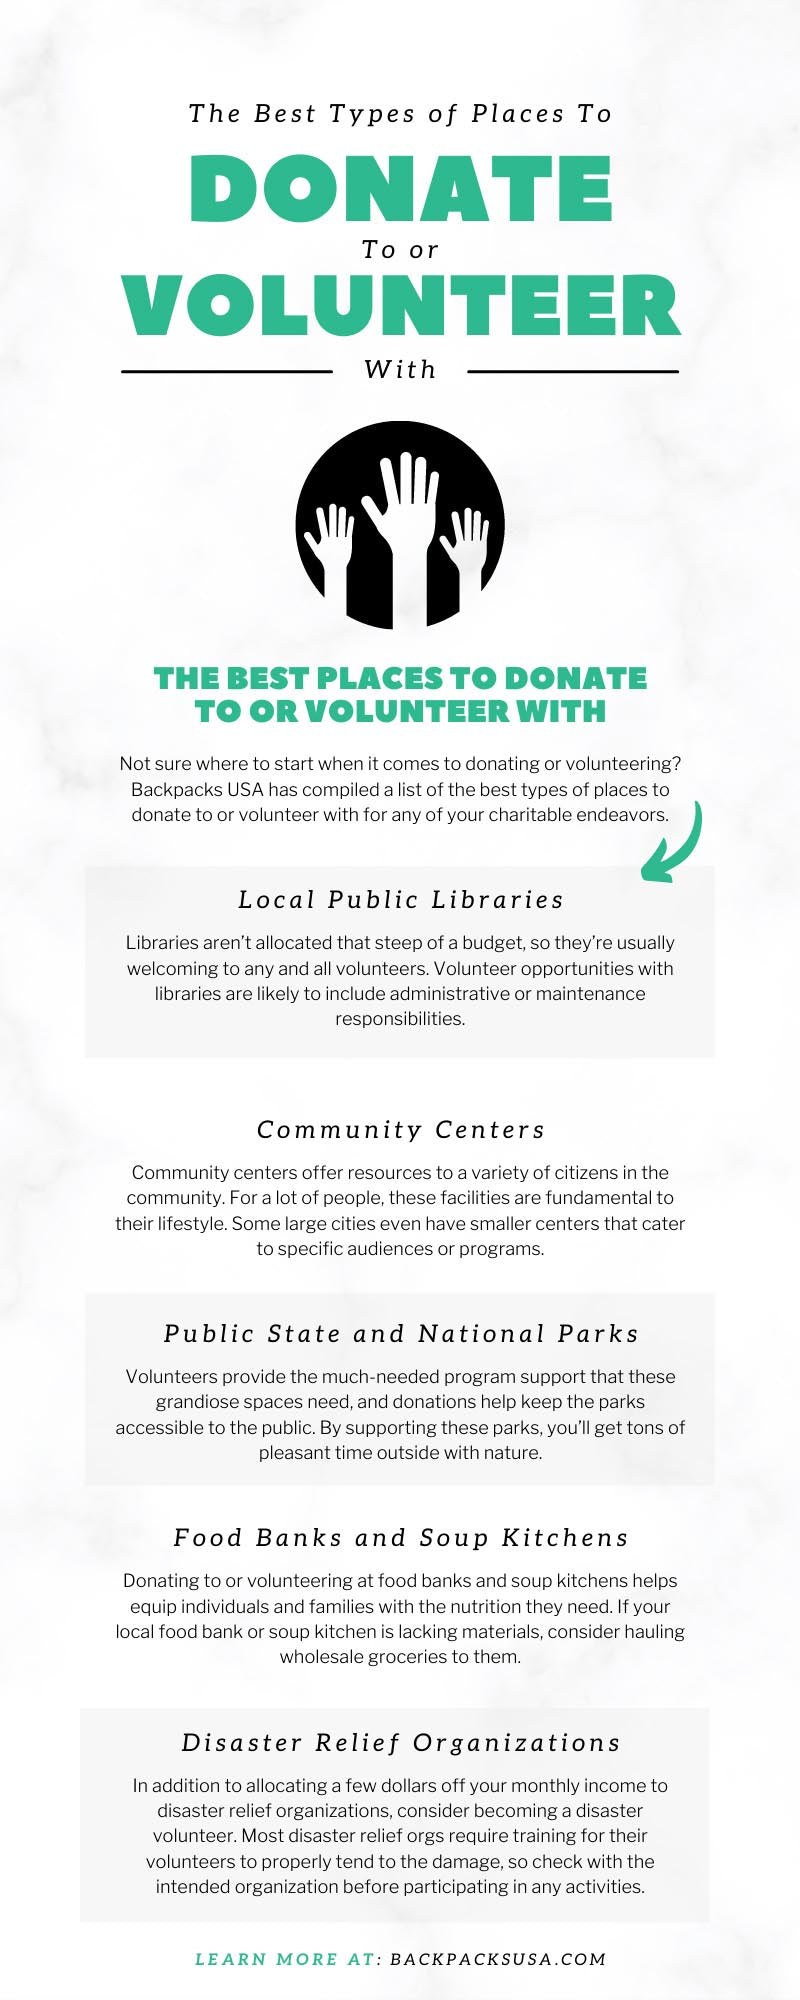 The Best Types of Places To Donate To or Volunteer With